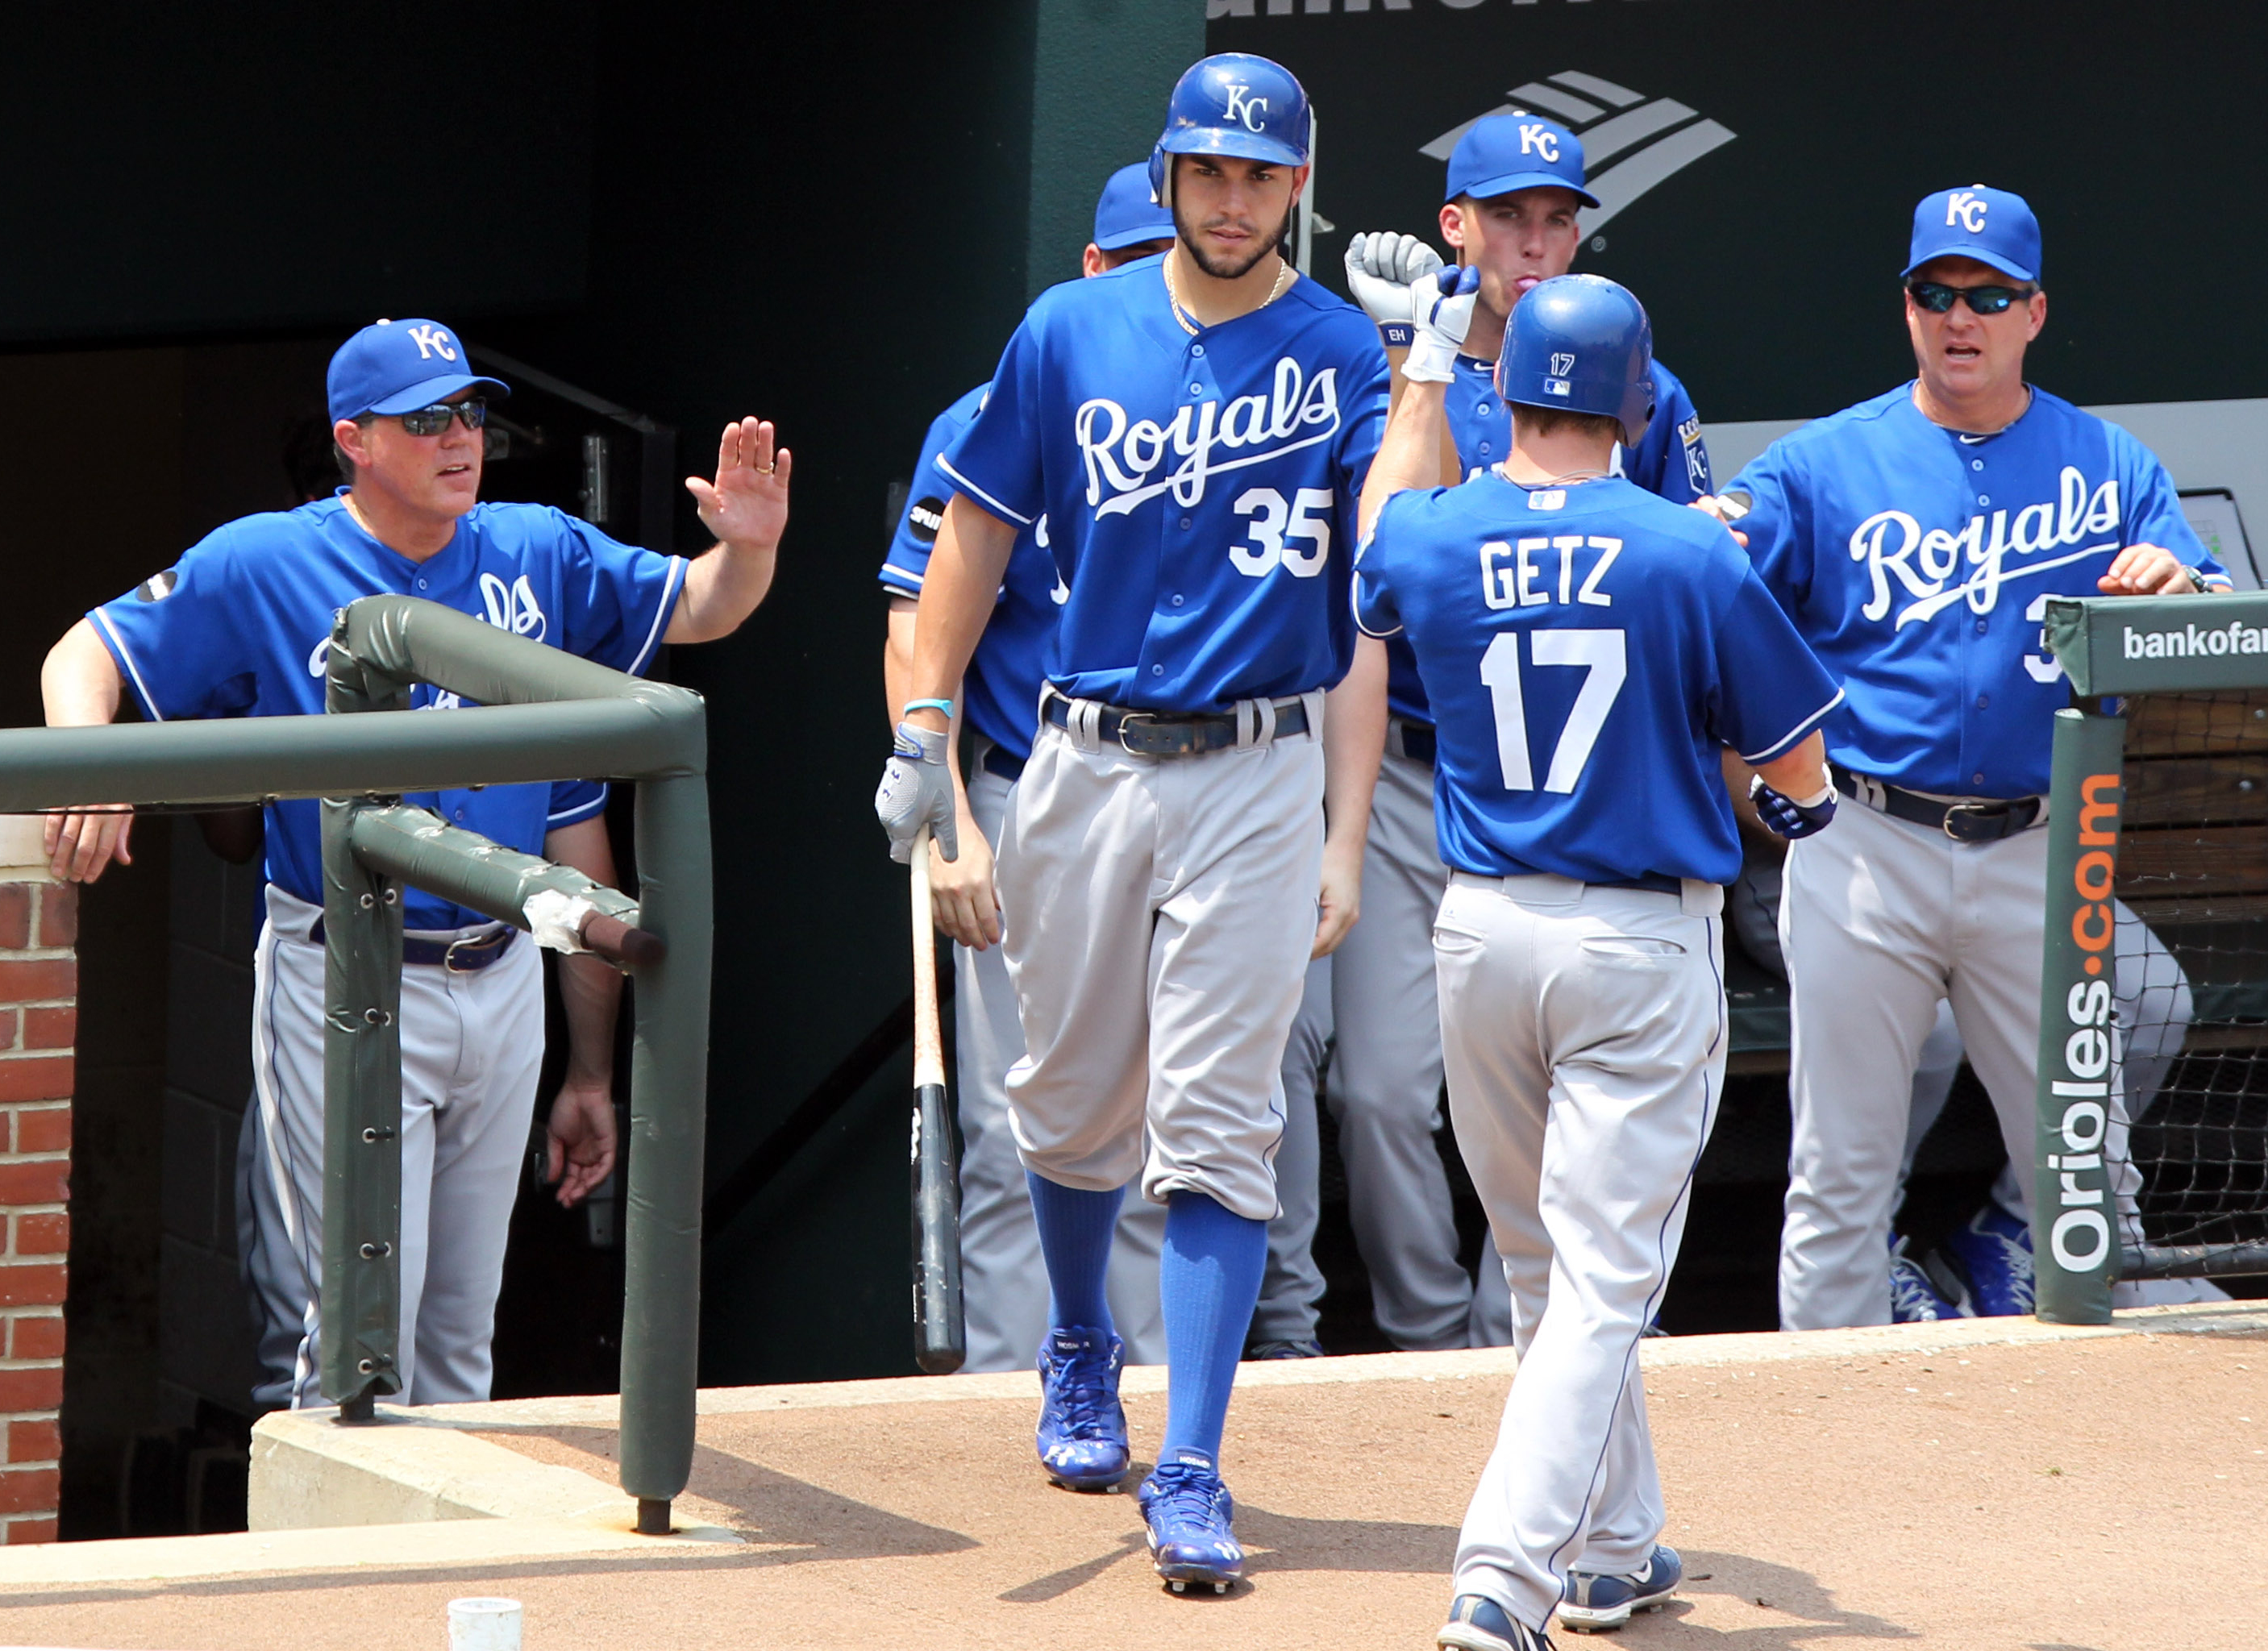 Kansas City Royals - The New York Times